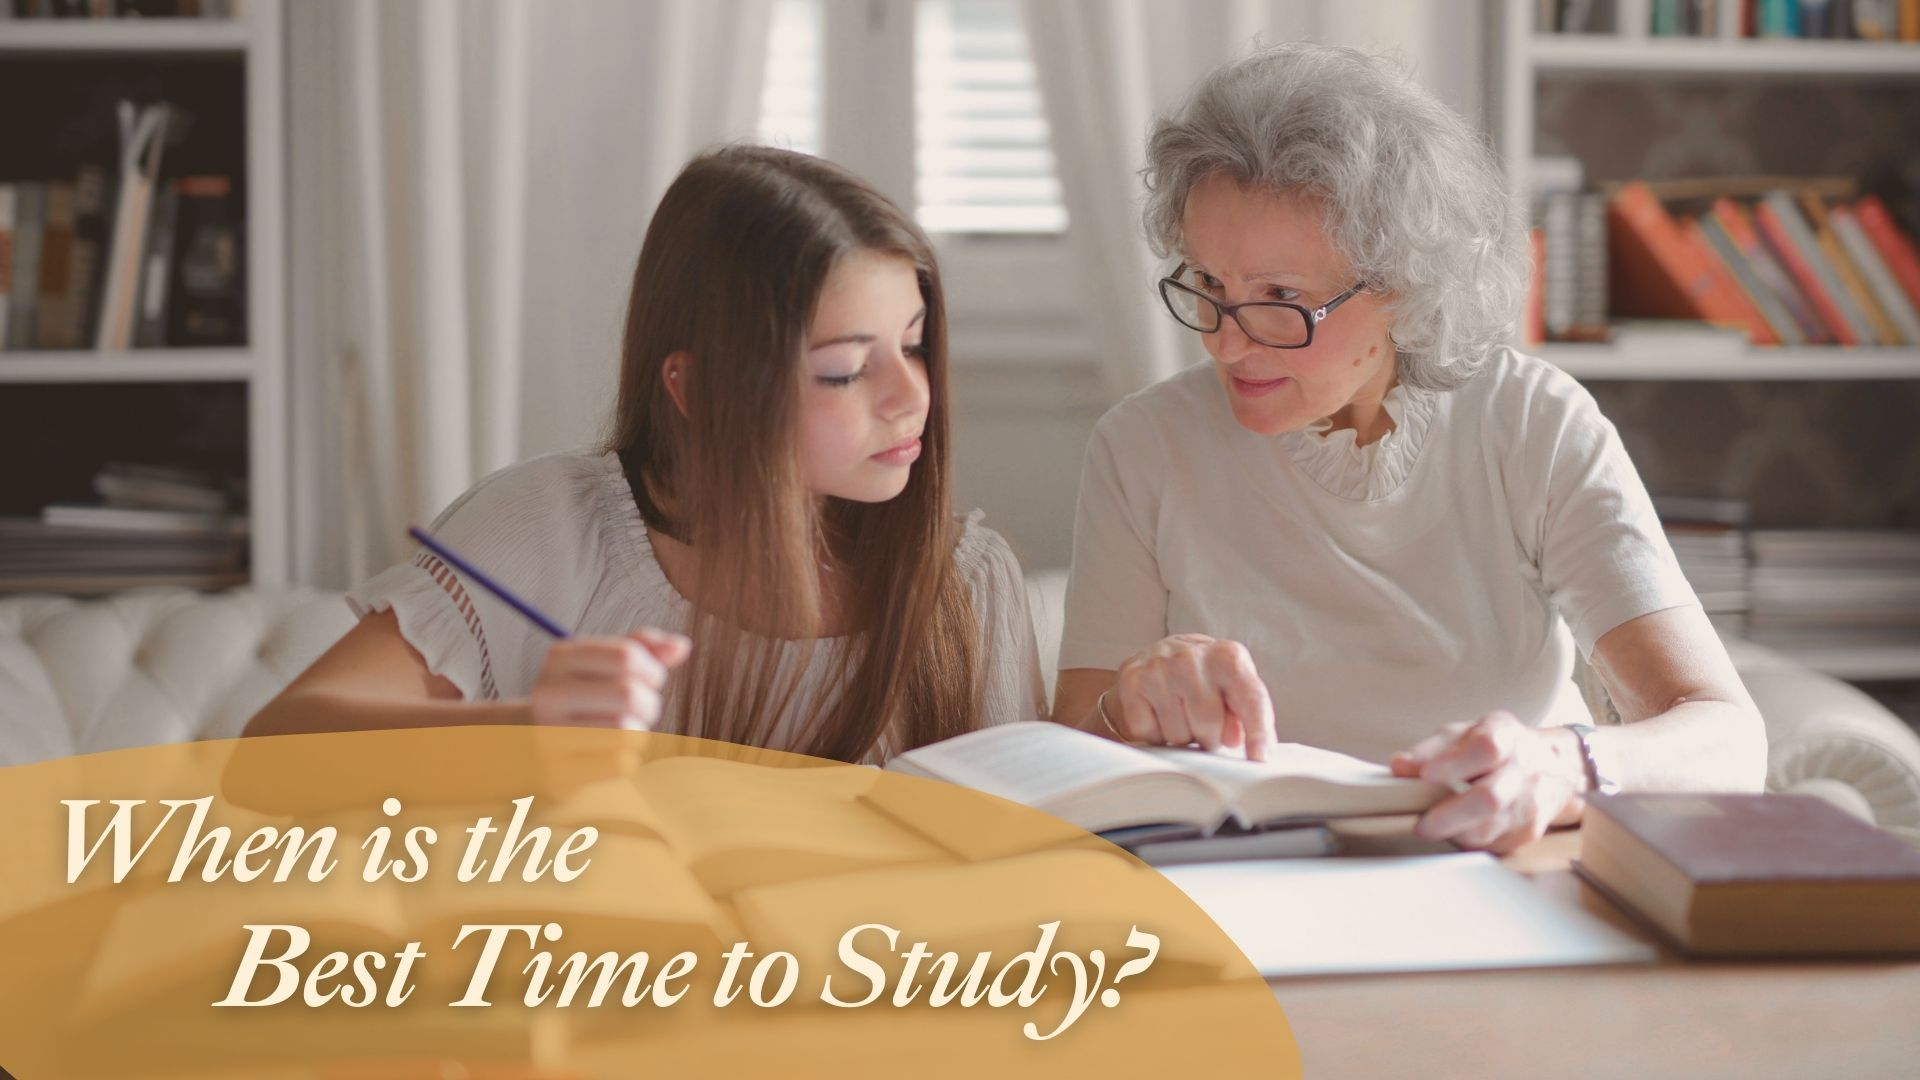 when is the best time to study